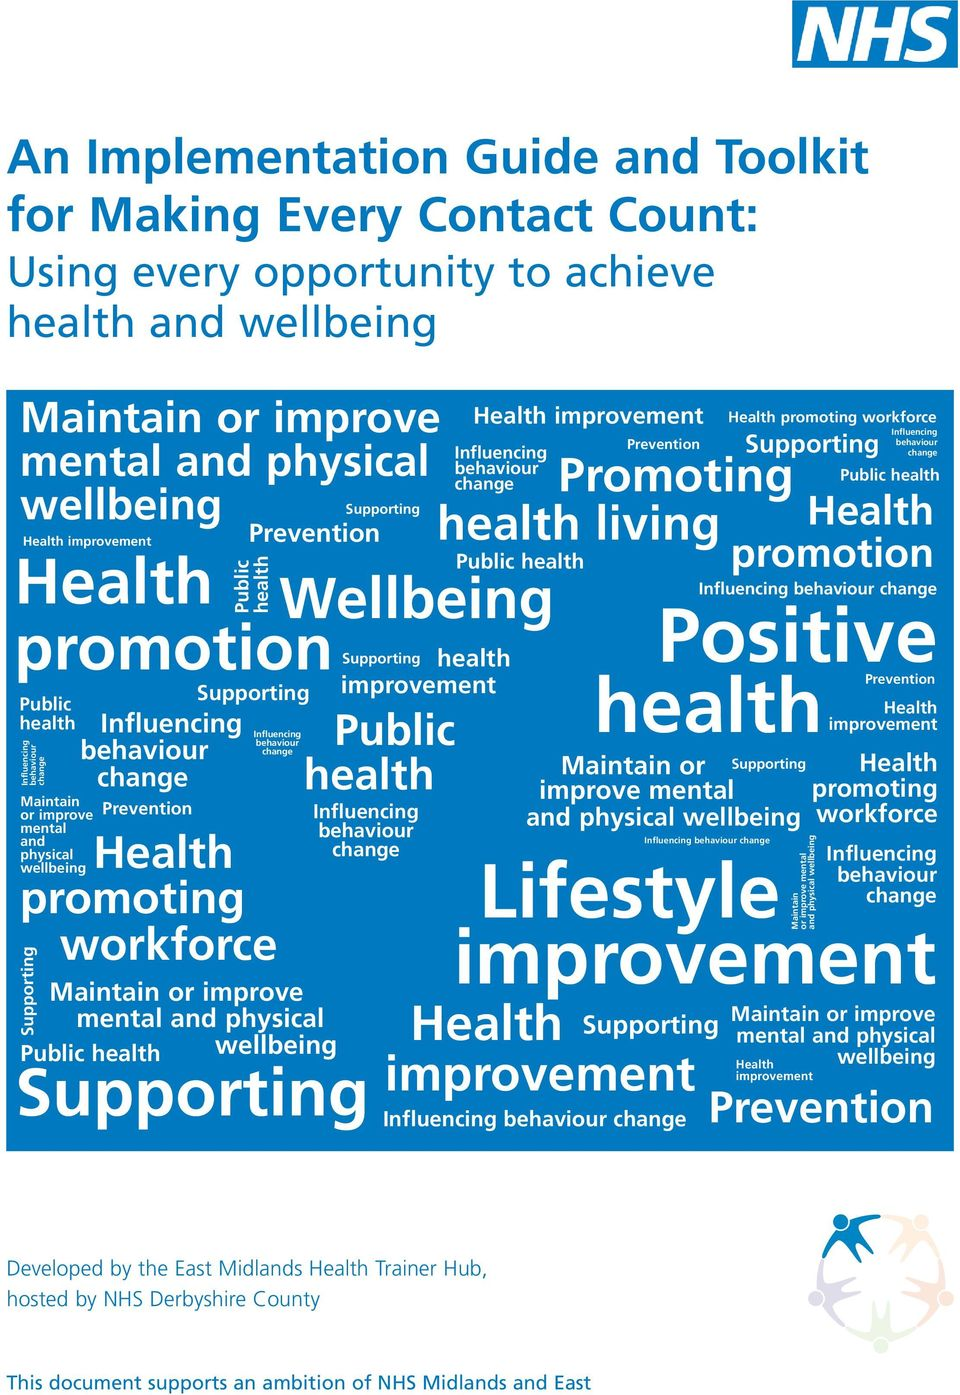 health Public health Prevention Promoting health living Positive health Prevention Maintain or improve mental and physical wellbeing Lifestyle promoting workforce Maintain or improve mental and